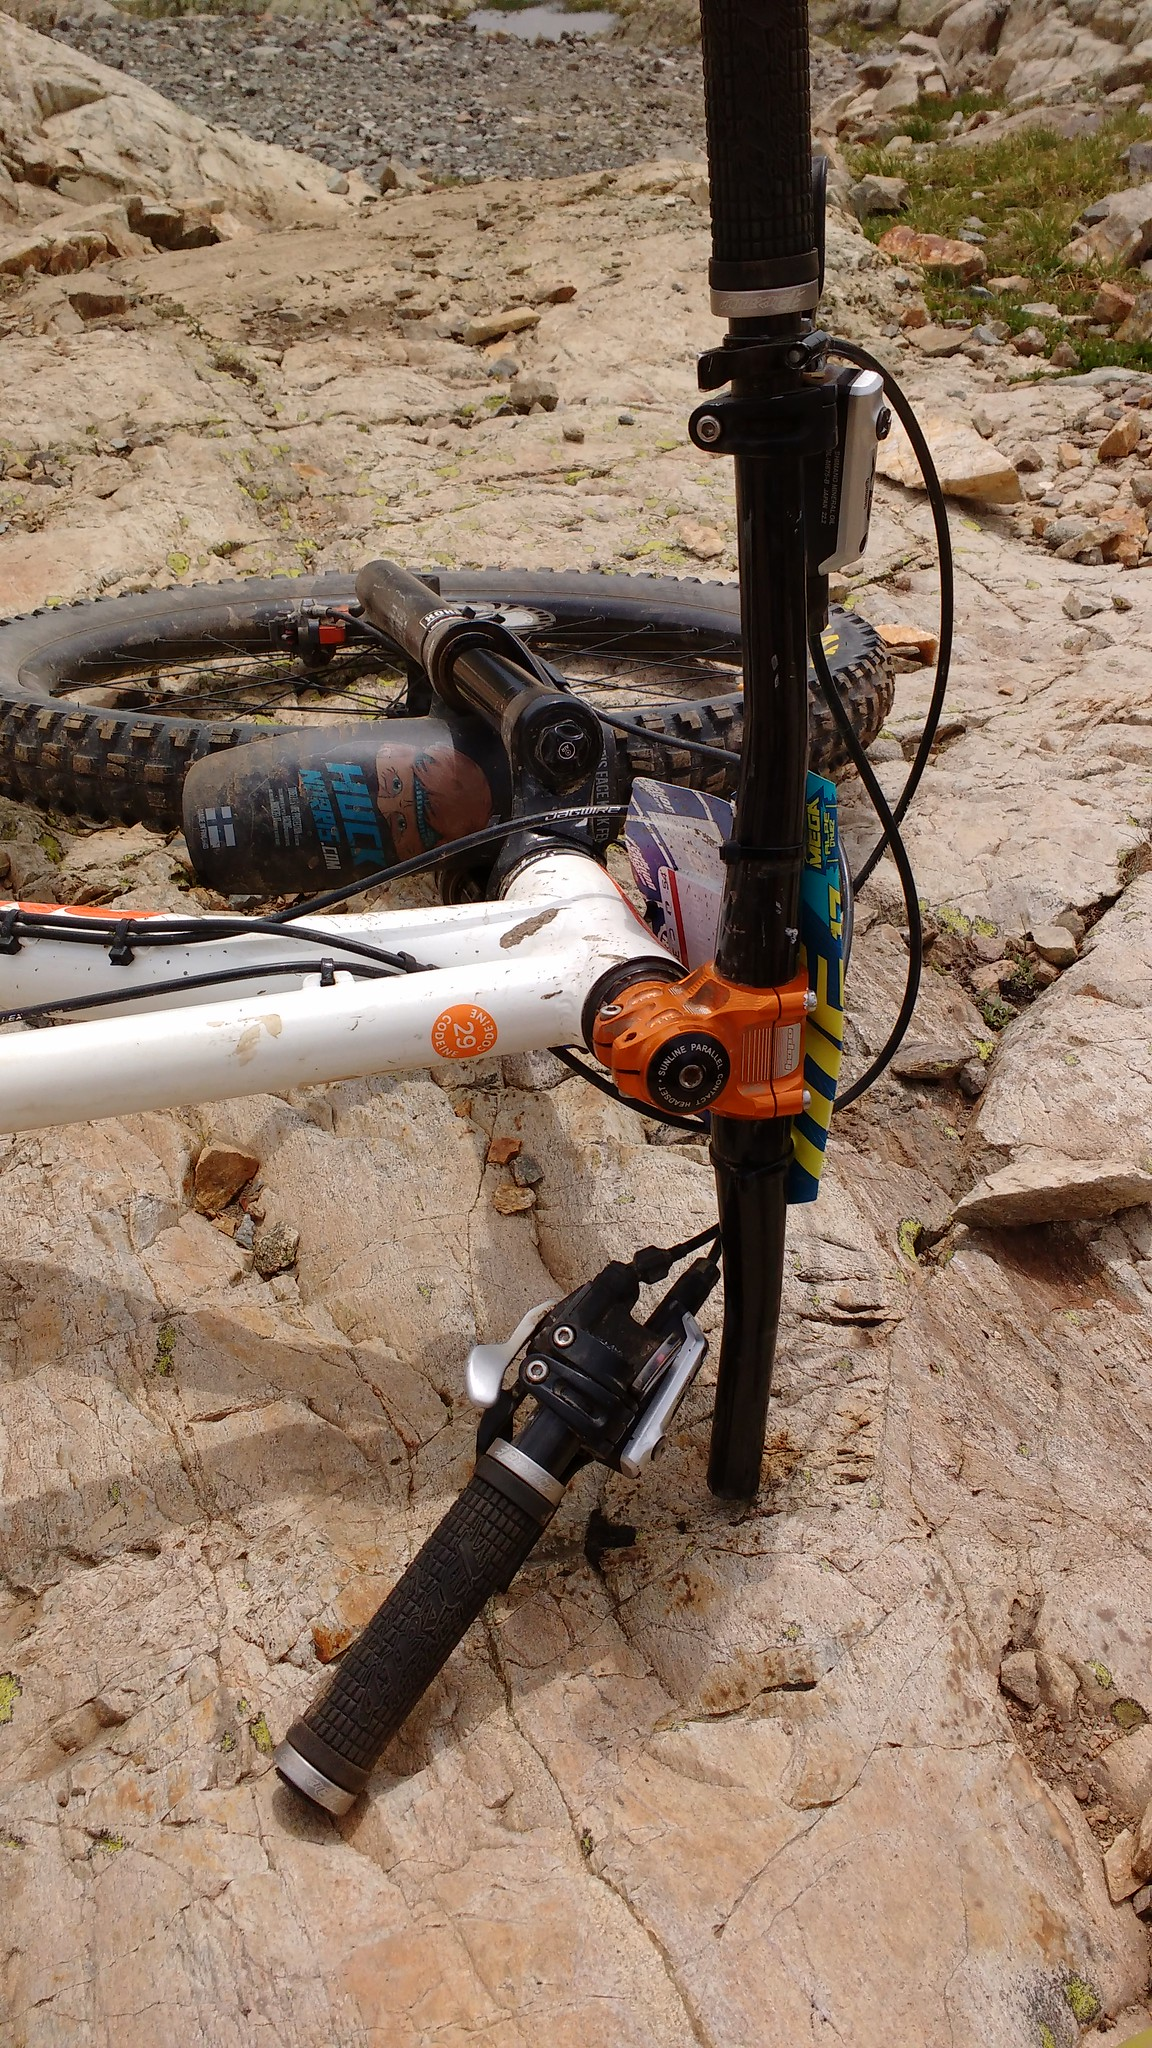 Hope Carbon Bars General Snapping Singletrack Magazine Handlebar Set Raceface Next Flat Bar Cue One Slightly Embarrassing Handed Ride Back Through Alpe Dhuez Had A Spare Of Aluminium